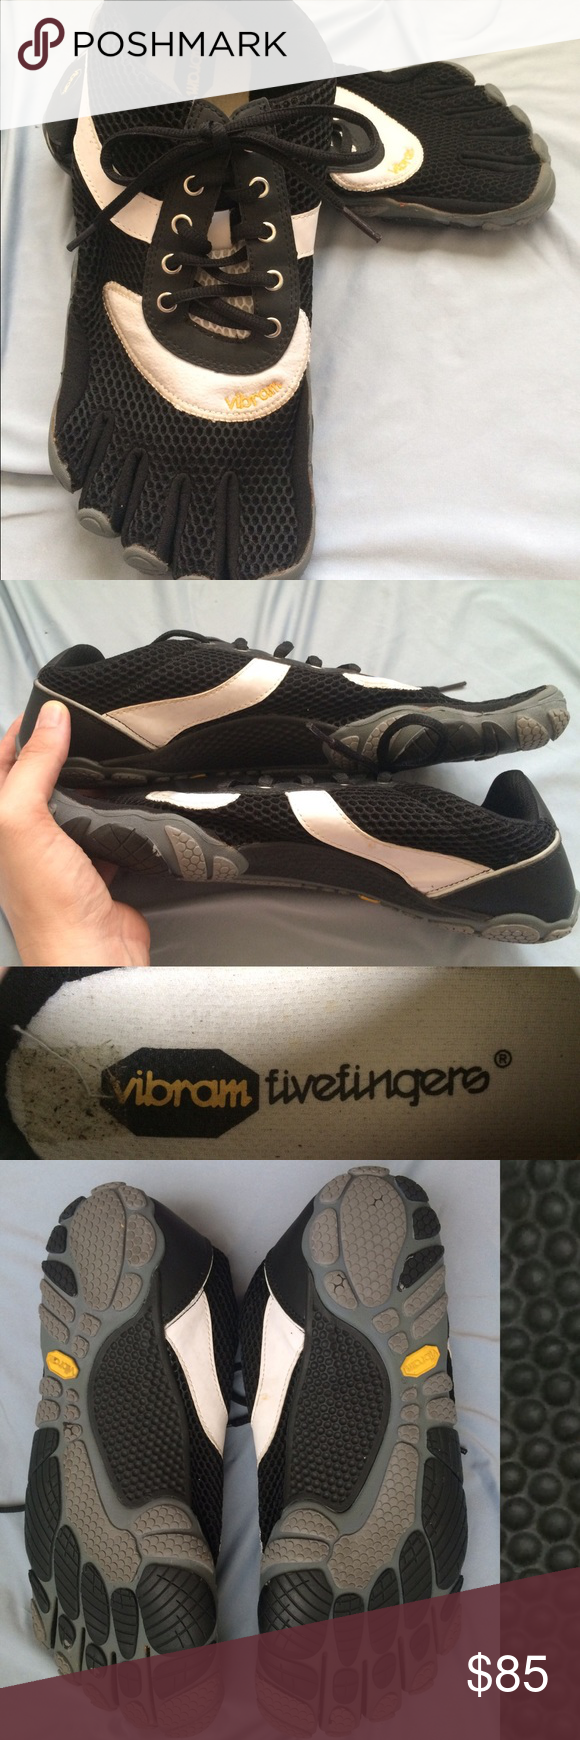 Men's Vibram FiveFingers Tennis shoe style Vibram FiveFingers. He bought online along with 3 other Vibram pairs and only wore this one once with toe socks. Vibram Shoes